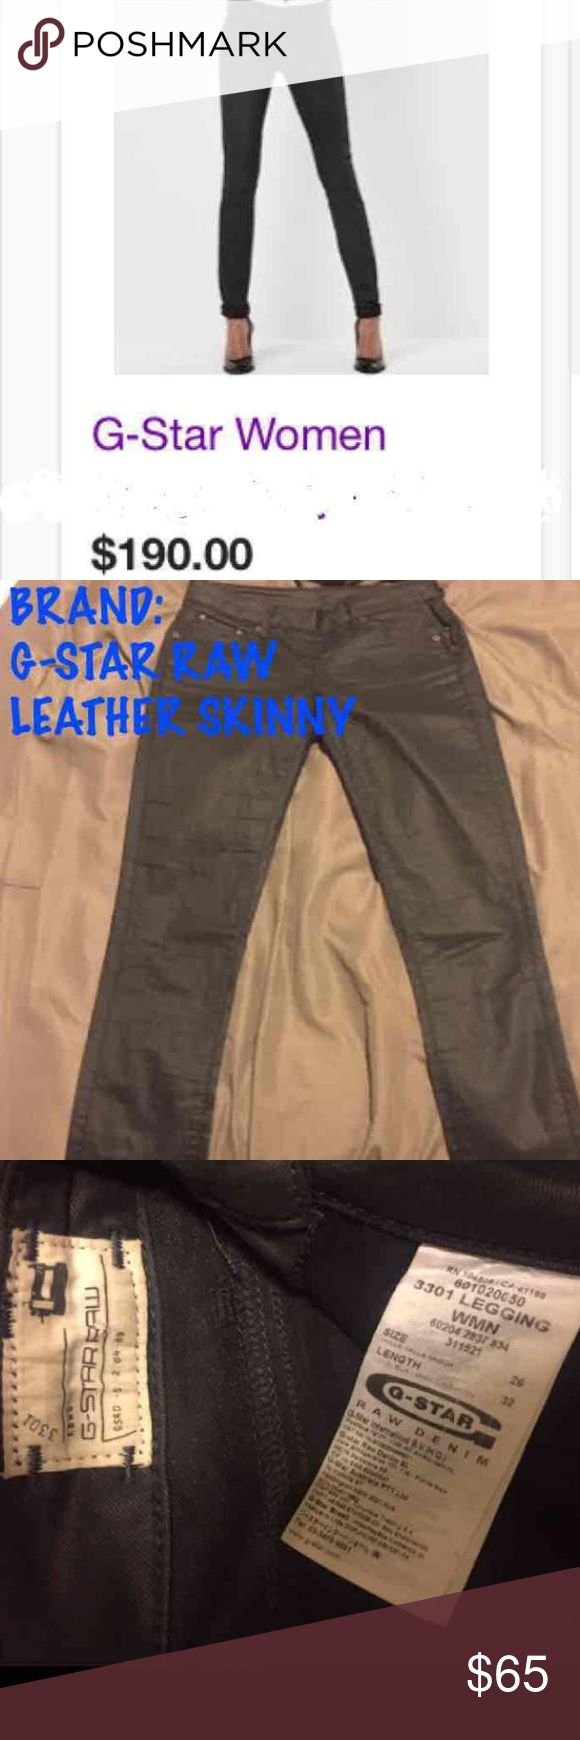 """G Star Raw Leather/Pleather Skinny Pant/Jeans G-STAR RAW BRAND - SUPER TRENDY BLACK SKINNY JEANS/LEGGING. SIZE 26 x 32.  These have a really cool unique almost leather look to them. Color is """"new black"""". Really hard to find as I've been looking for a size up and can't find anywhere. Originally paid $190 G Star Raw Pants Skinny"""